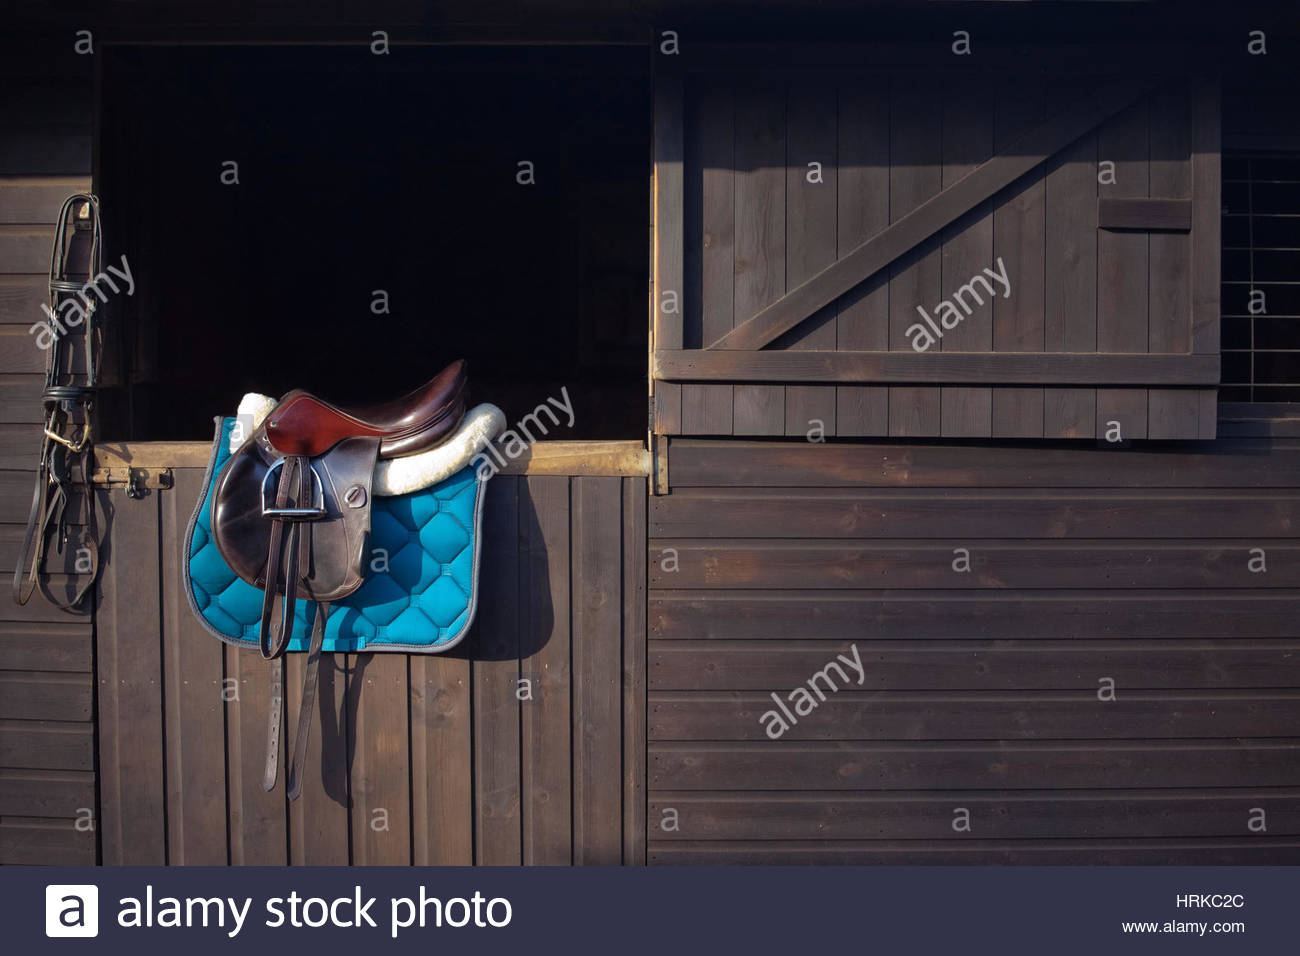 English saddle and bridle hanging from stable horse riding equipment UK - Stock Image